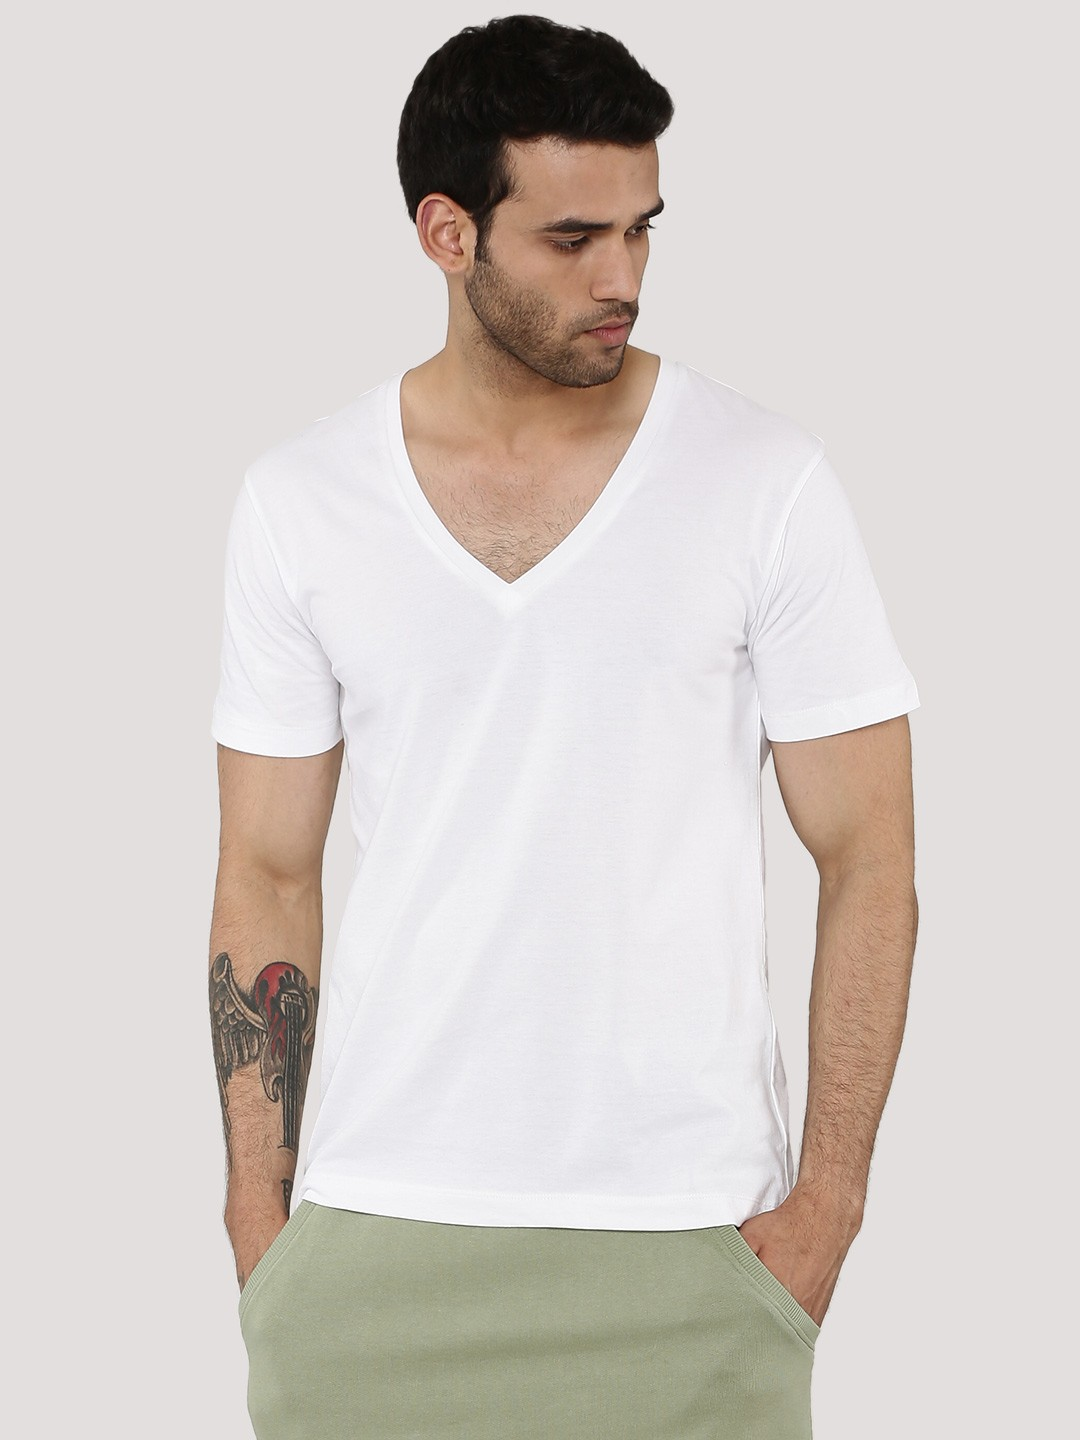 Shop t-shirts for men on sale with wholesale cheap price and fast delivery, and find more best cool mens long sleeve t shirts & bulk mens t-shirts online with drop shipping. search 1.